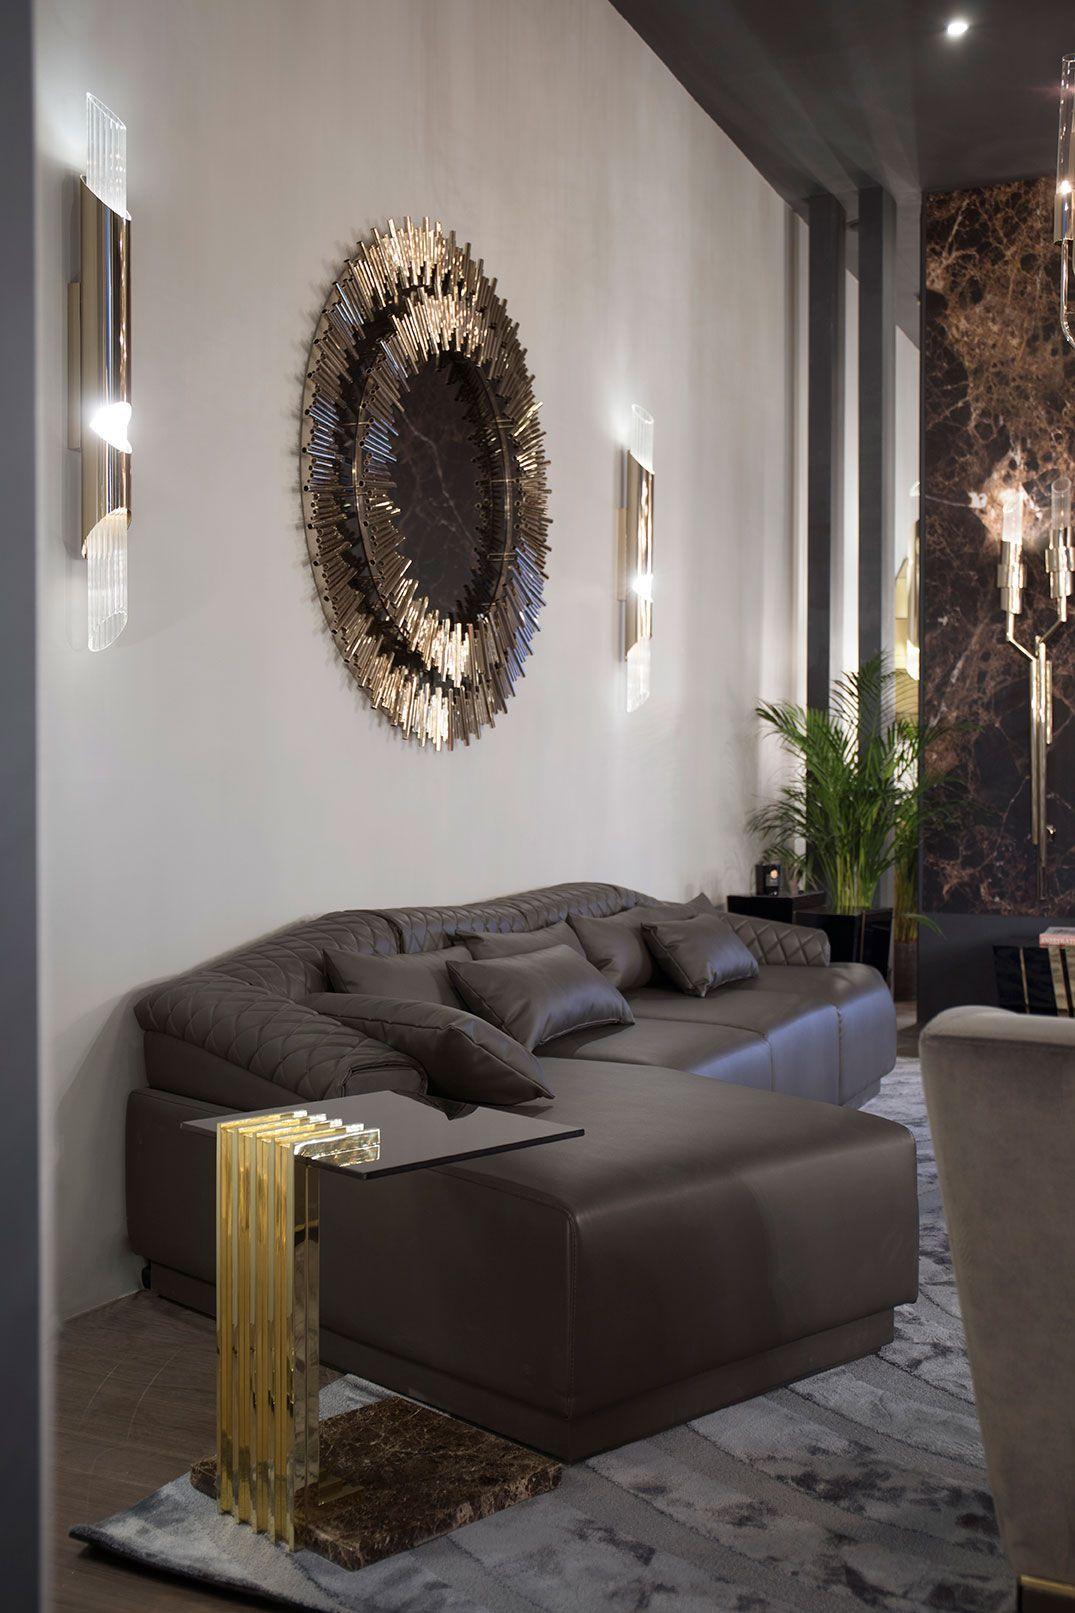 Are You In Paris So Do Not Miss The Opportunity To Visit The Maison Et Objet One Of The Biggest Design Fairs Maison Et Objet Maison Design Maison De The